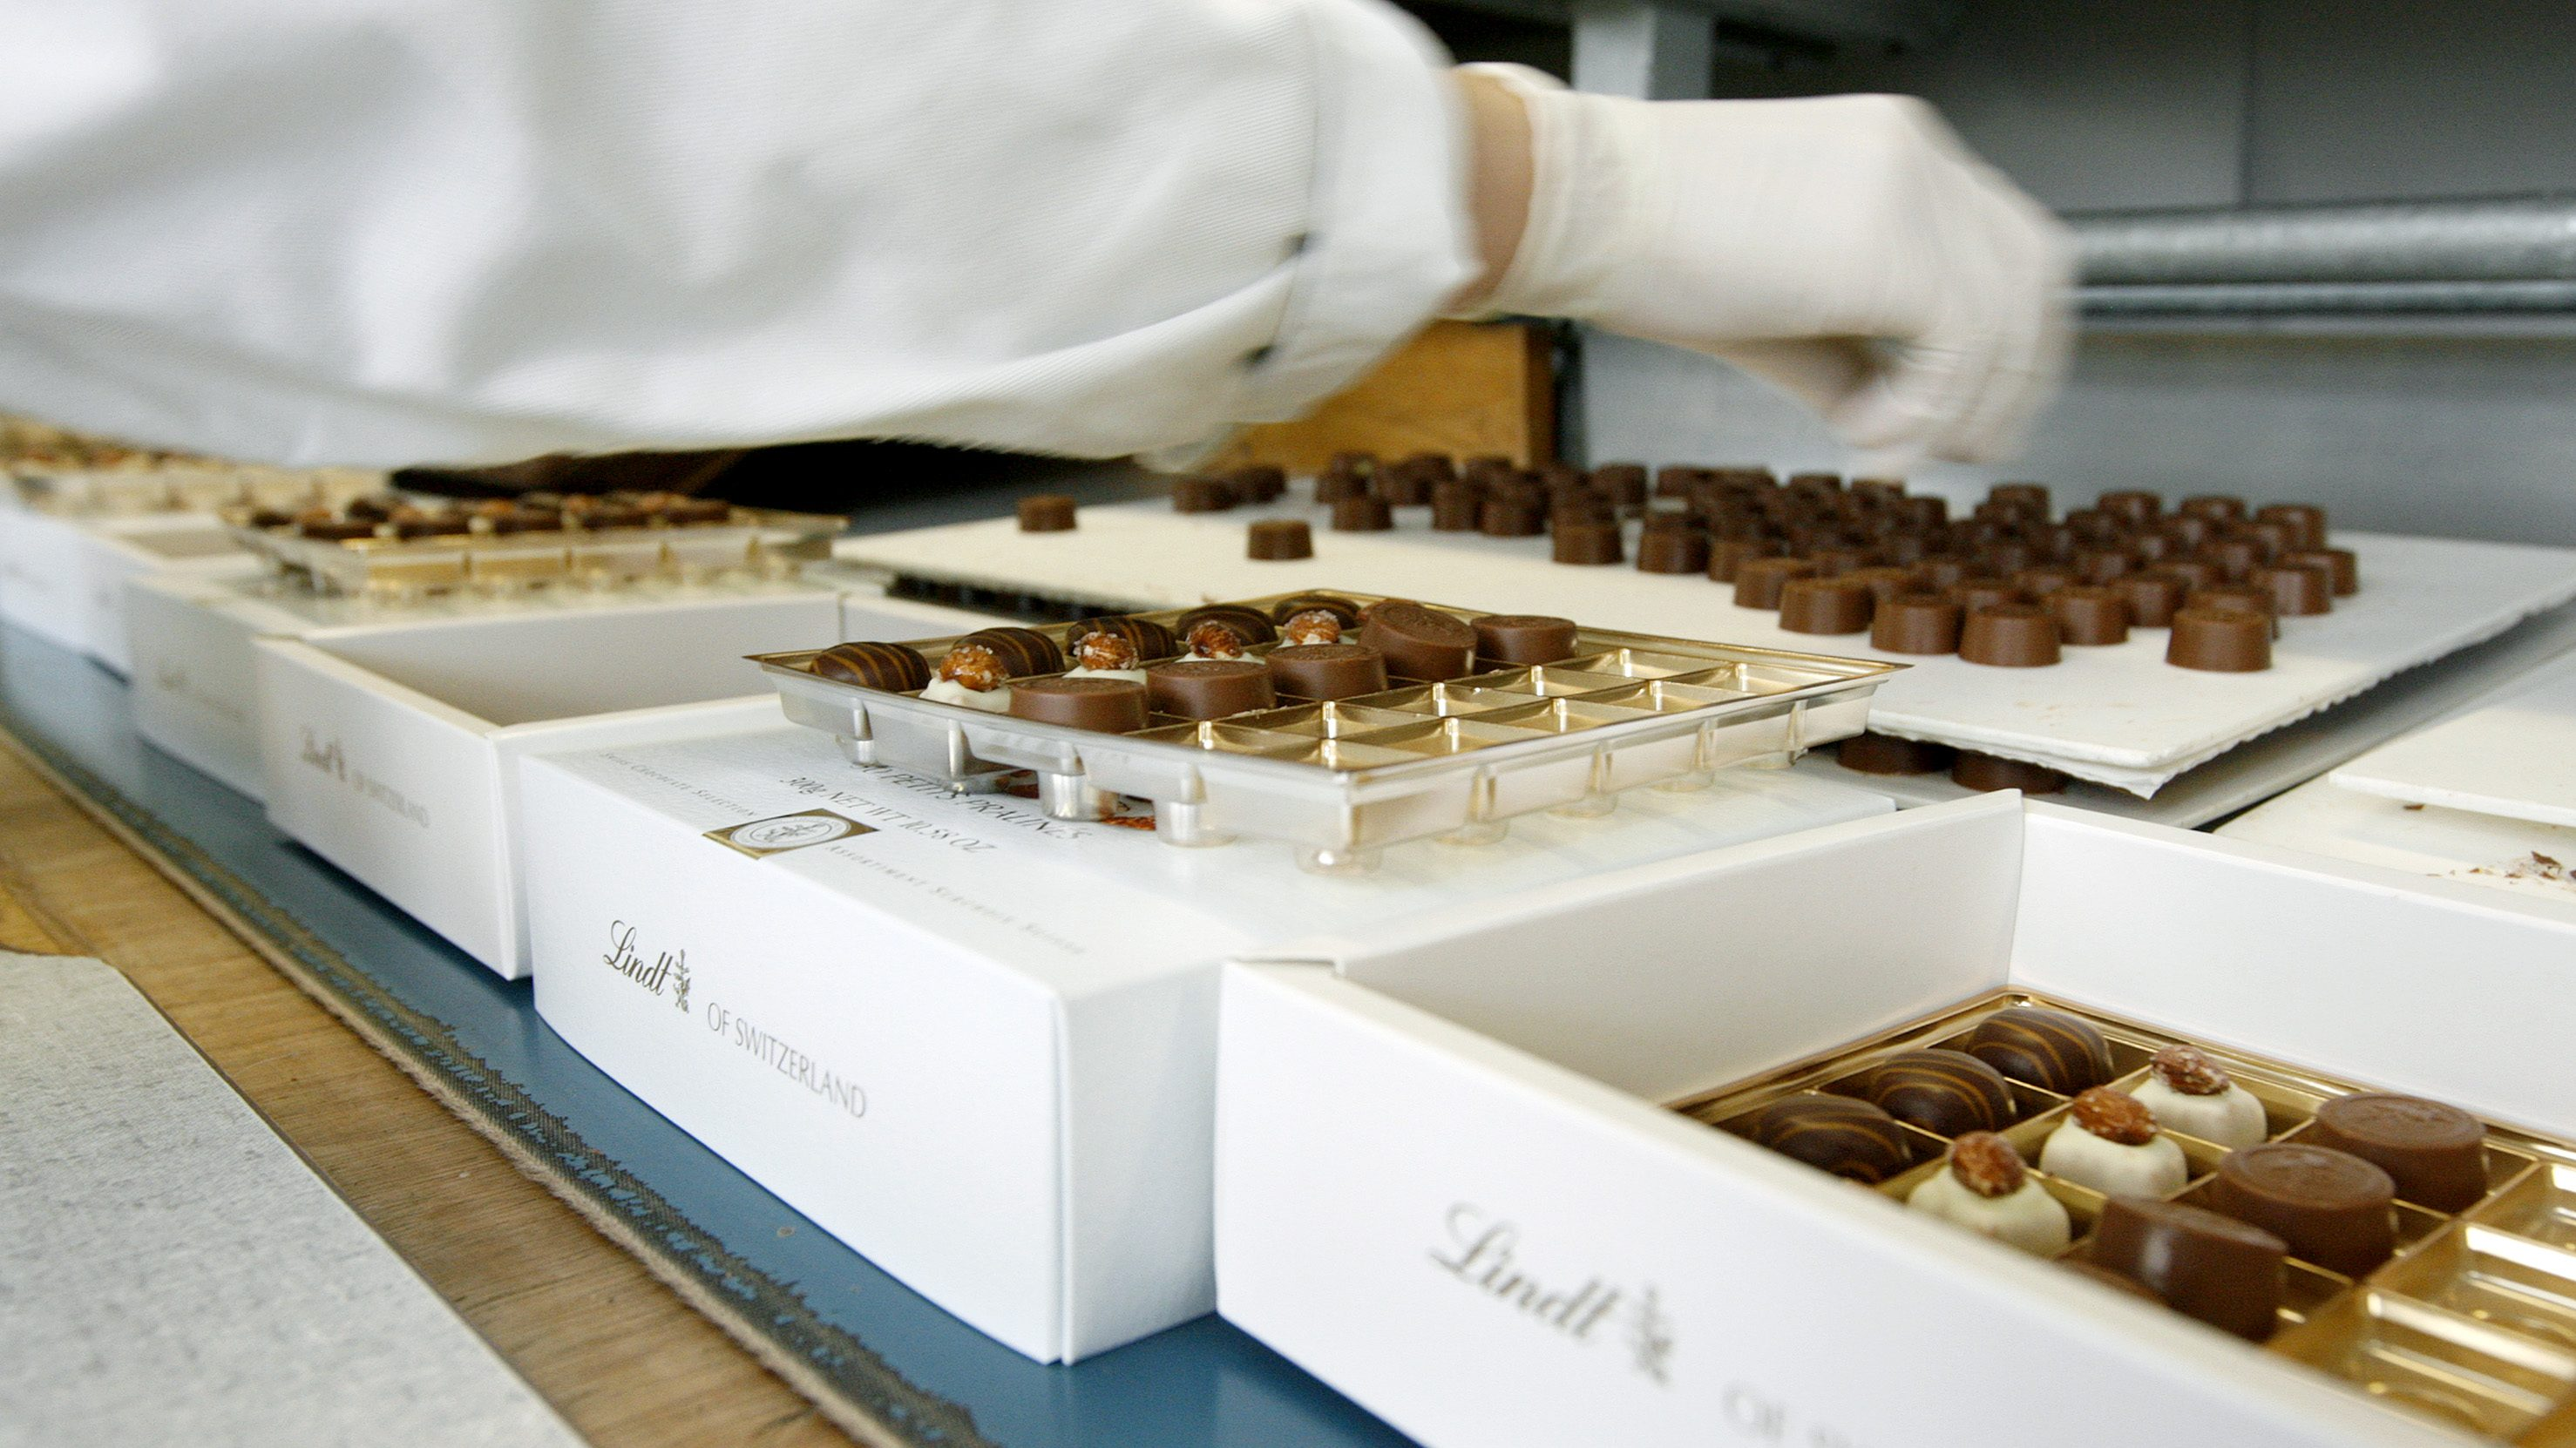 Employee put pralines in boxes at the plant of Swiss chocolate producer Lindt & Spruengli AG in Kilchberg near Zurich in this April 10, 2008 file photo. The maker of Lindor pralines and gold-wrapped Easter bunnies posted a forecast-beating 5 percent rise in first-half net profit to 23 million Swiss francs ($20.95 million), boosted by upbeat demand for its Excellence and Creation 70% products. Picture taken April 10, 2008 REUTERS/Arnd Wiegmann/files (SWITZERLAND) - RTR21PJZ